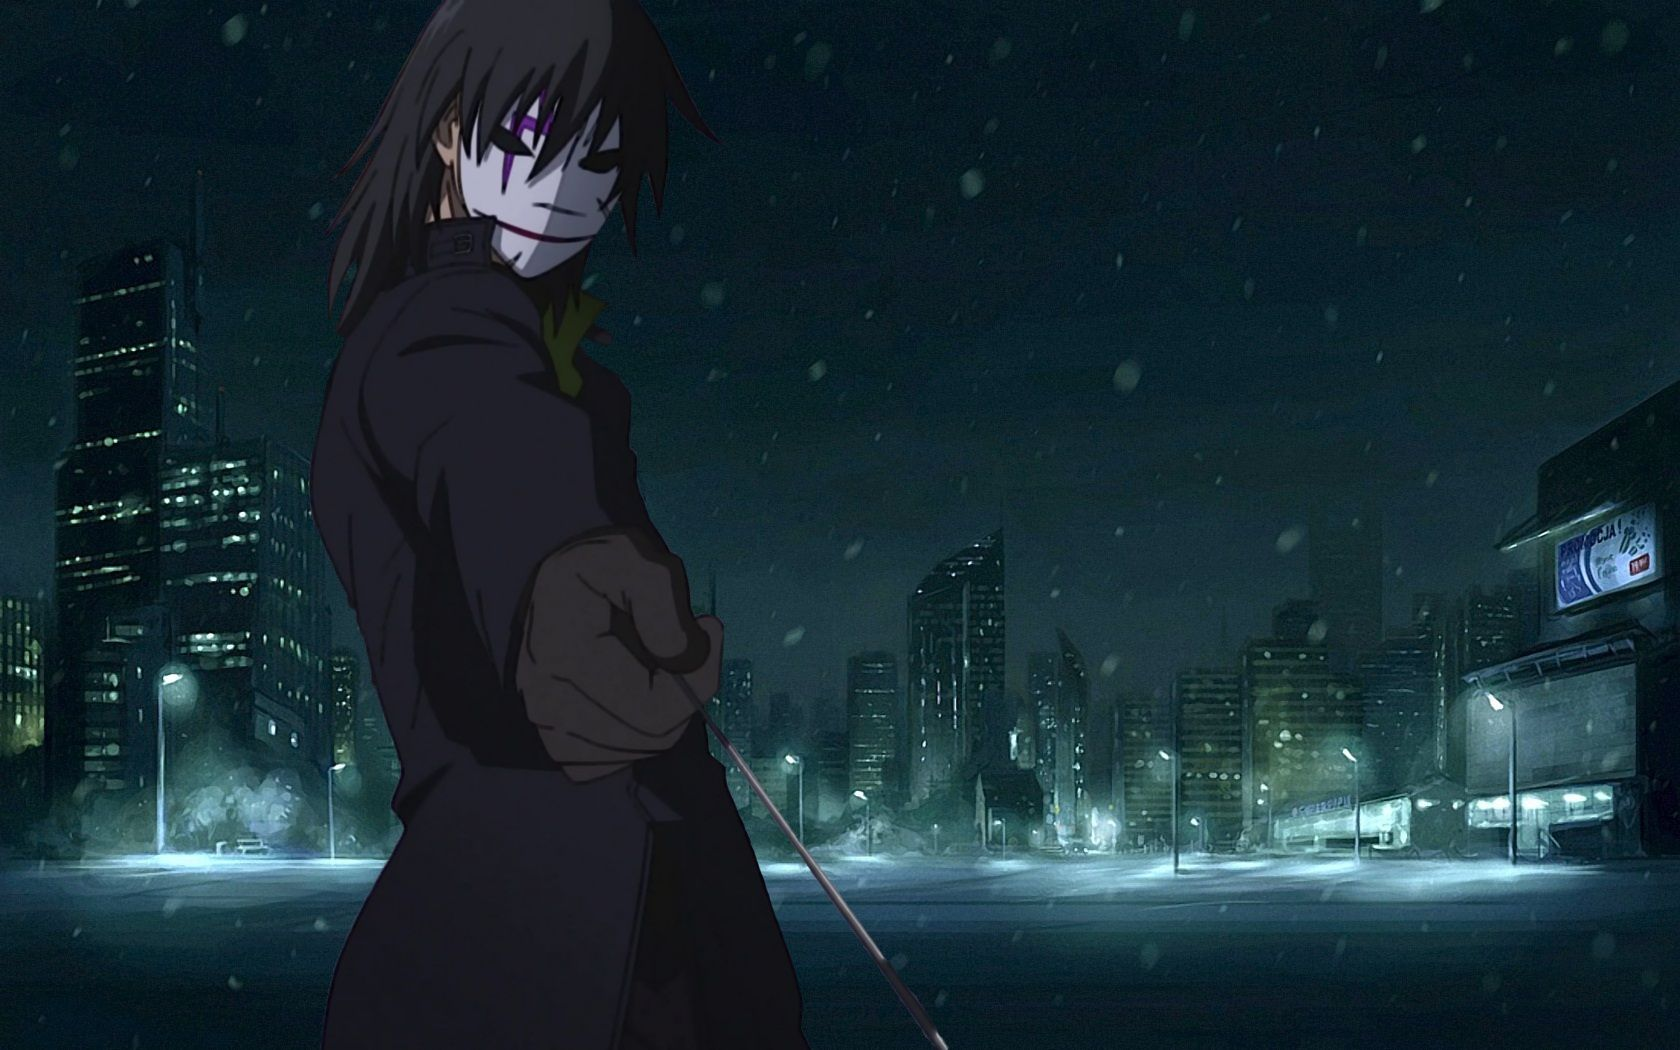 Anime Darker Than Black Wallpaper Black Wallpaper Anime Anime